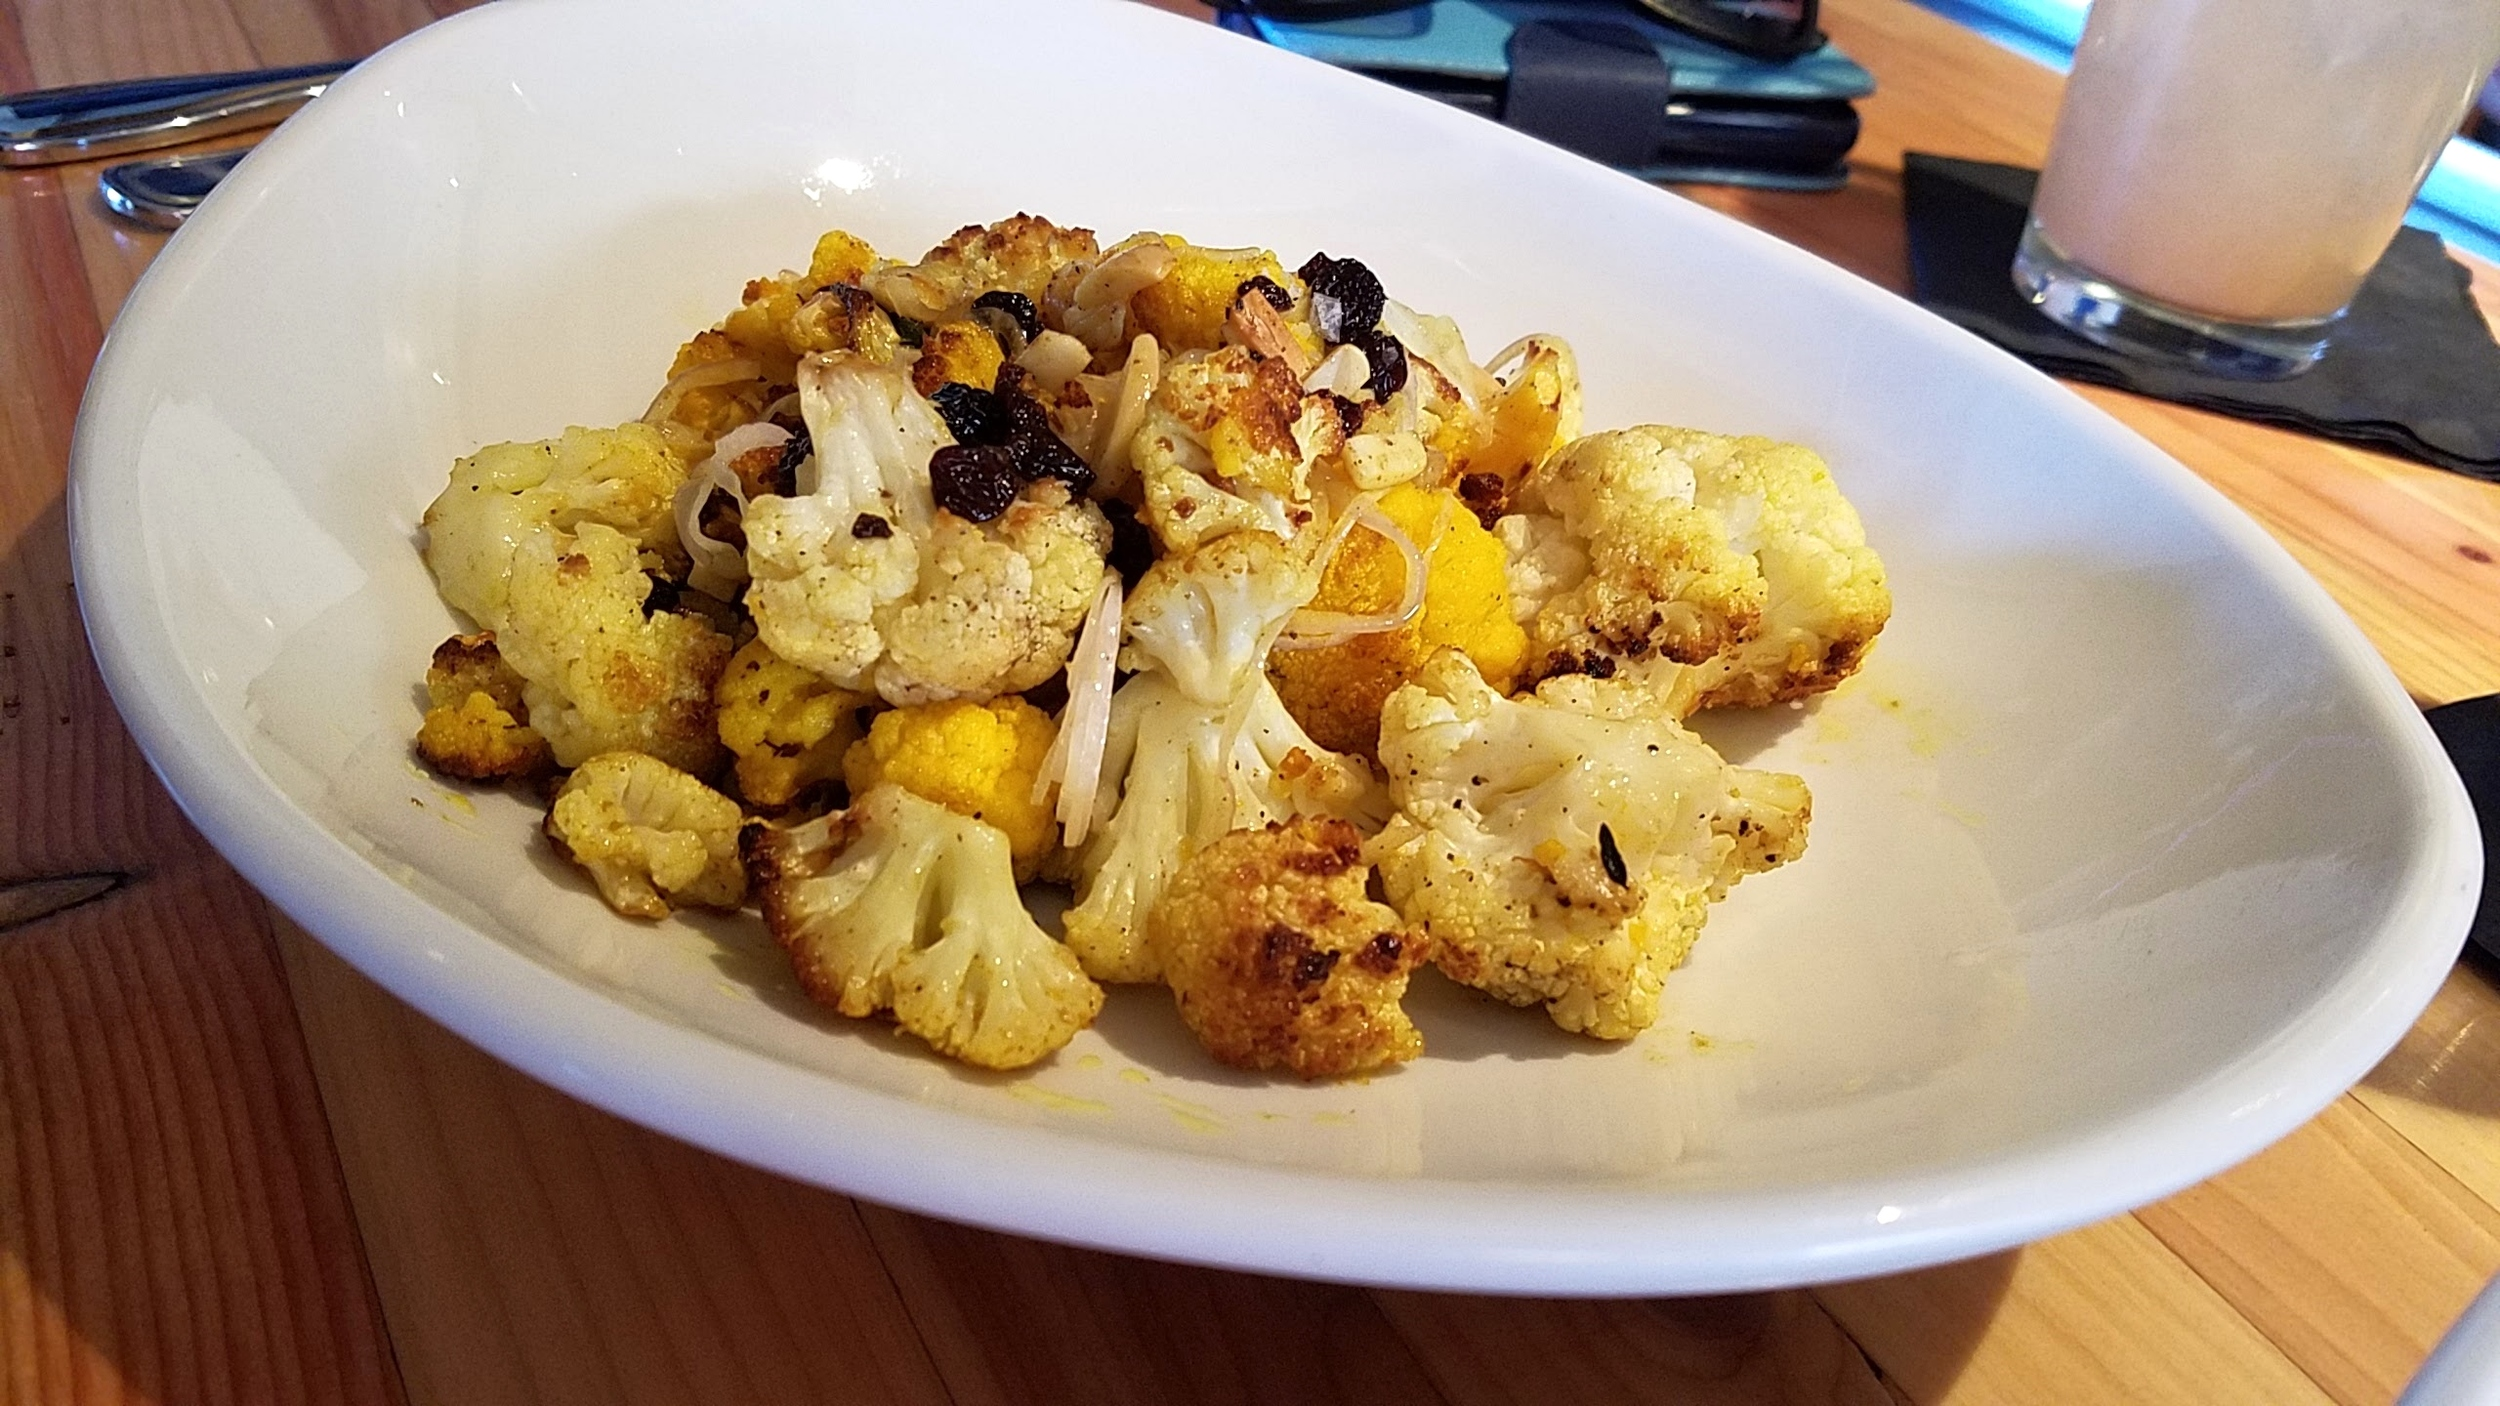 Cauliflower with currants and almonds